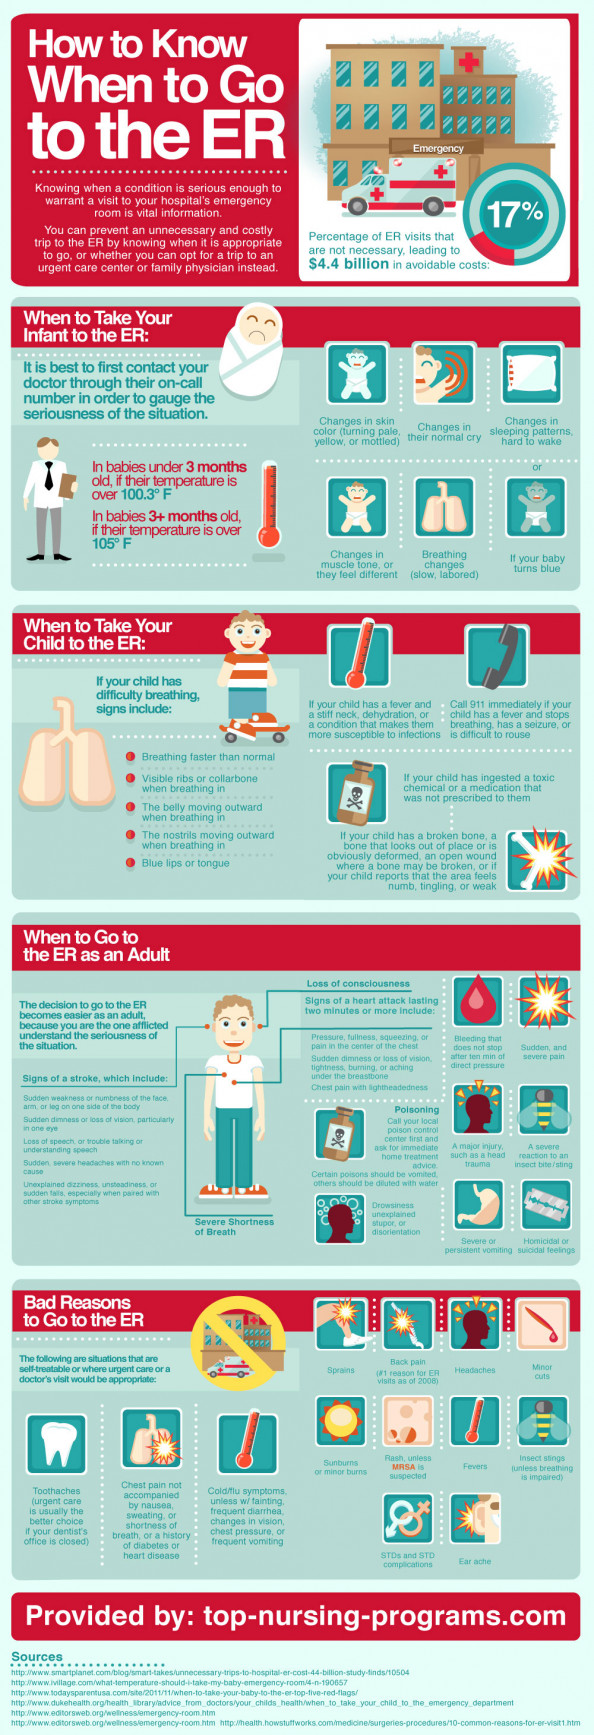 How to Know When to Go to the ER Infographic